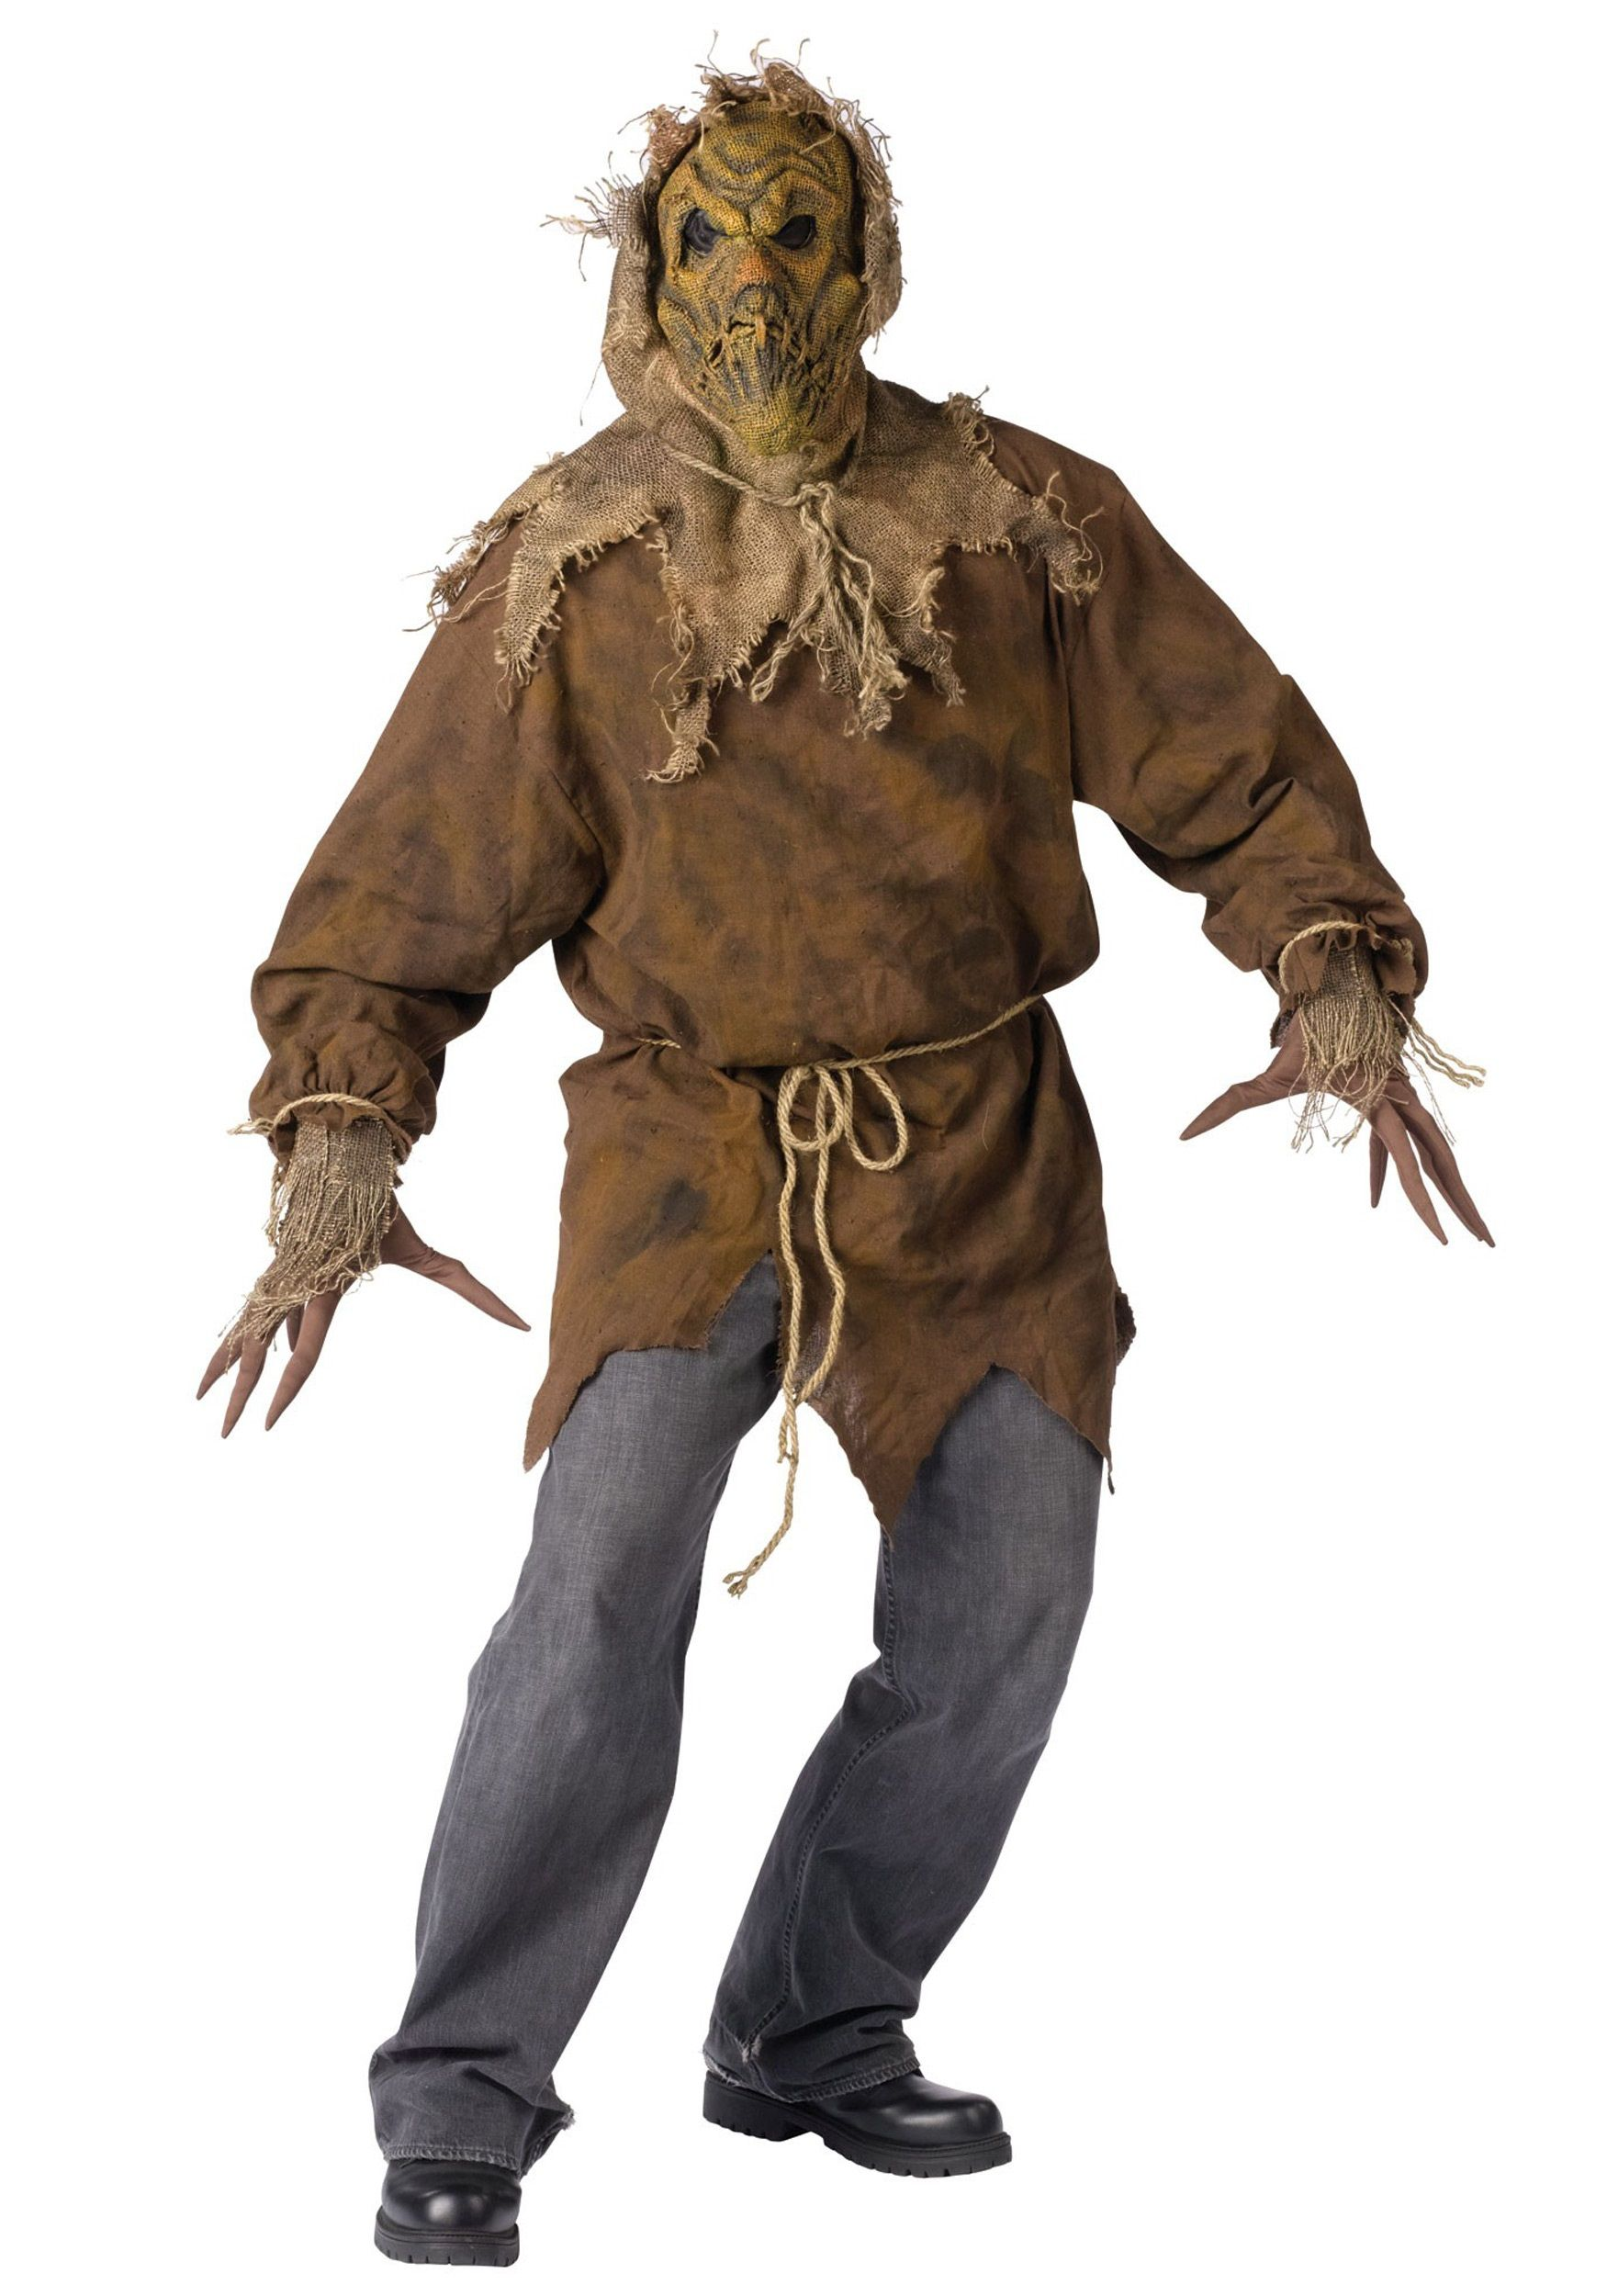 this scarecrow costume is truly scary great for any halloween party or for a haunted house this costume is sure to scare all